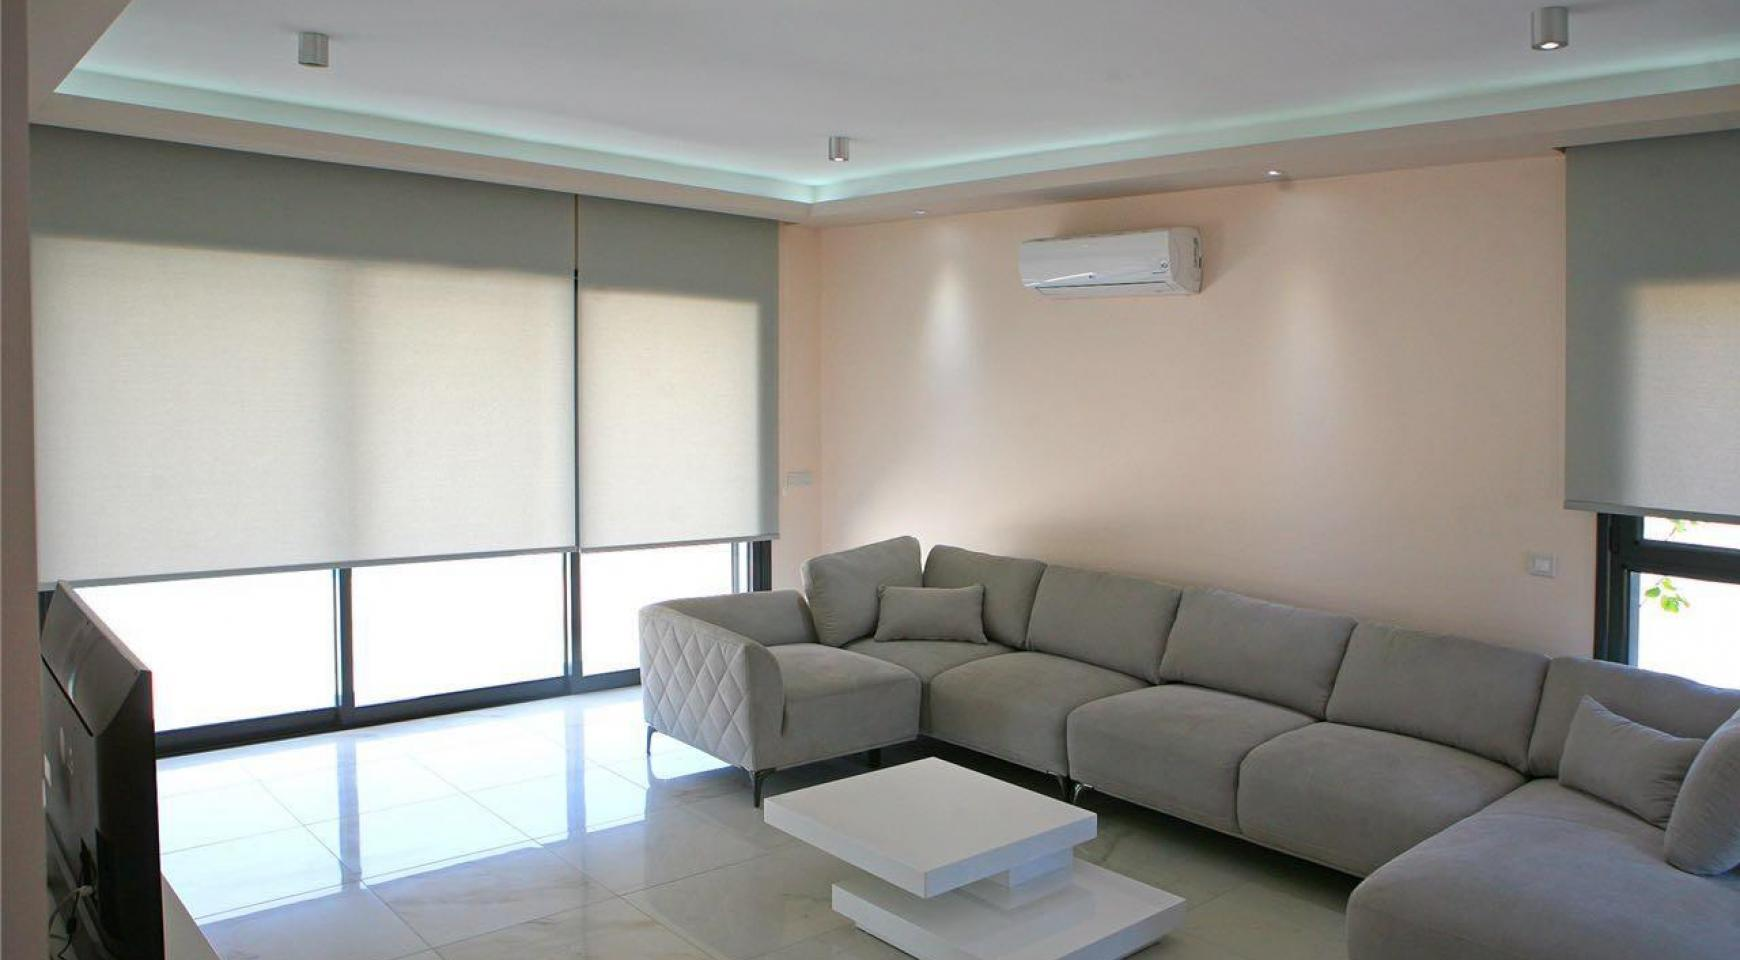 New Contemporary 3 Bedroom House in Central Location - 6